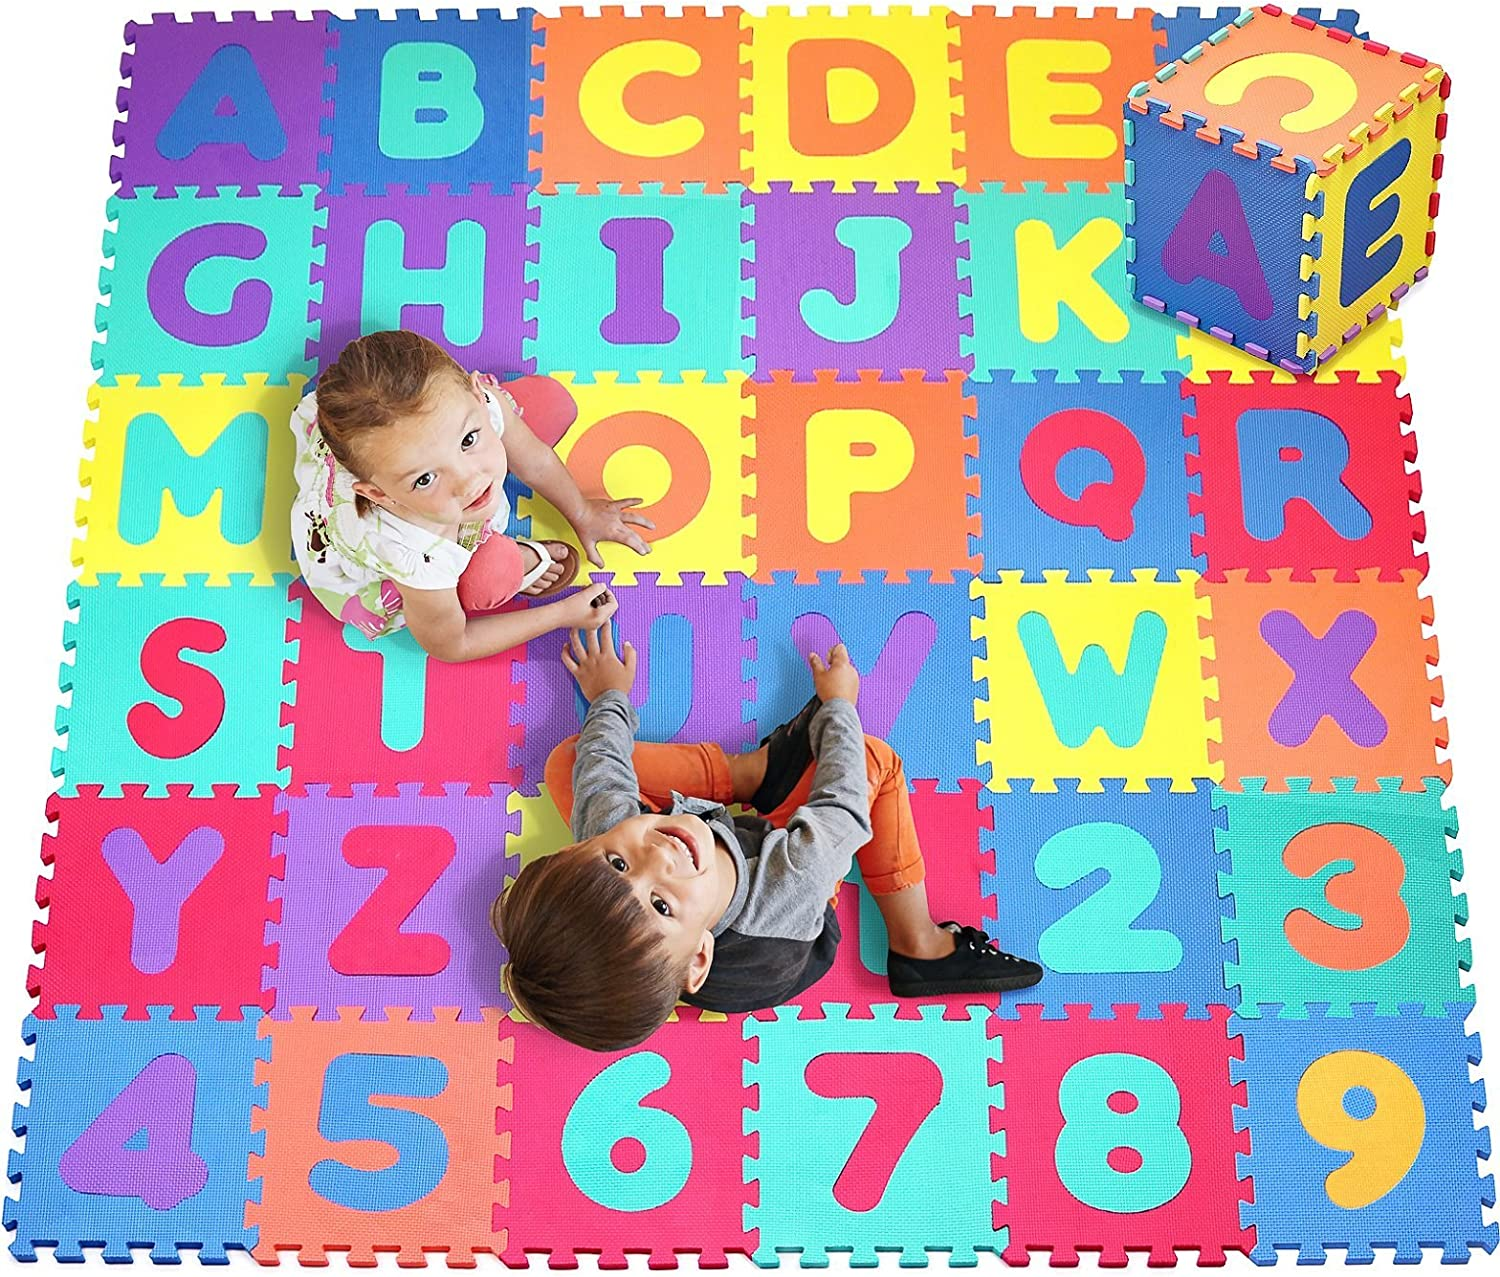 Click N' Play, Alphabet and Numbers Foam Puzzle Play Mat, 36 Tiles (Each Tile Measures 12 X 12 Inch for a Total Coverage of 36 Square Feet): Toys & Games